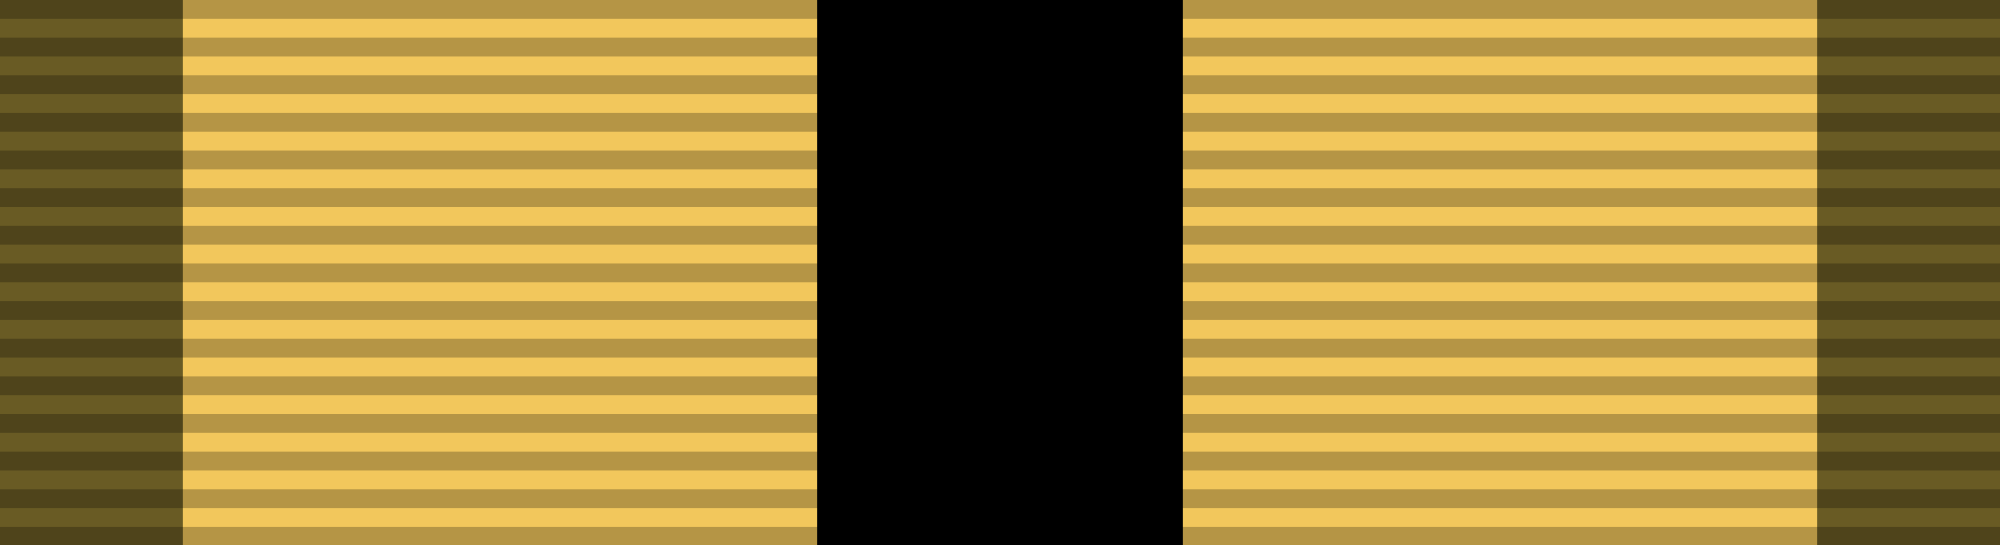 Distinguished Service Cross United States Military